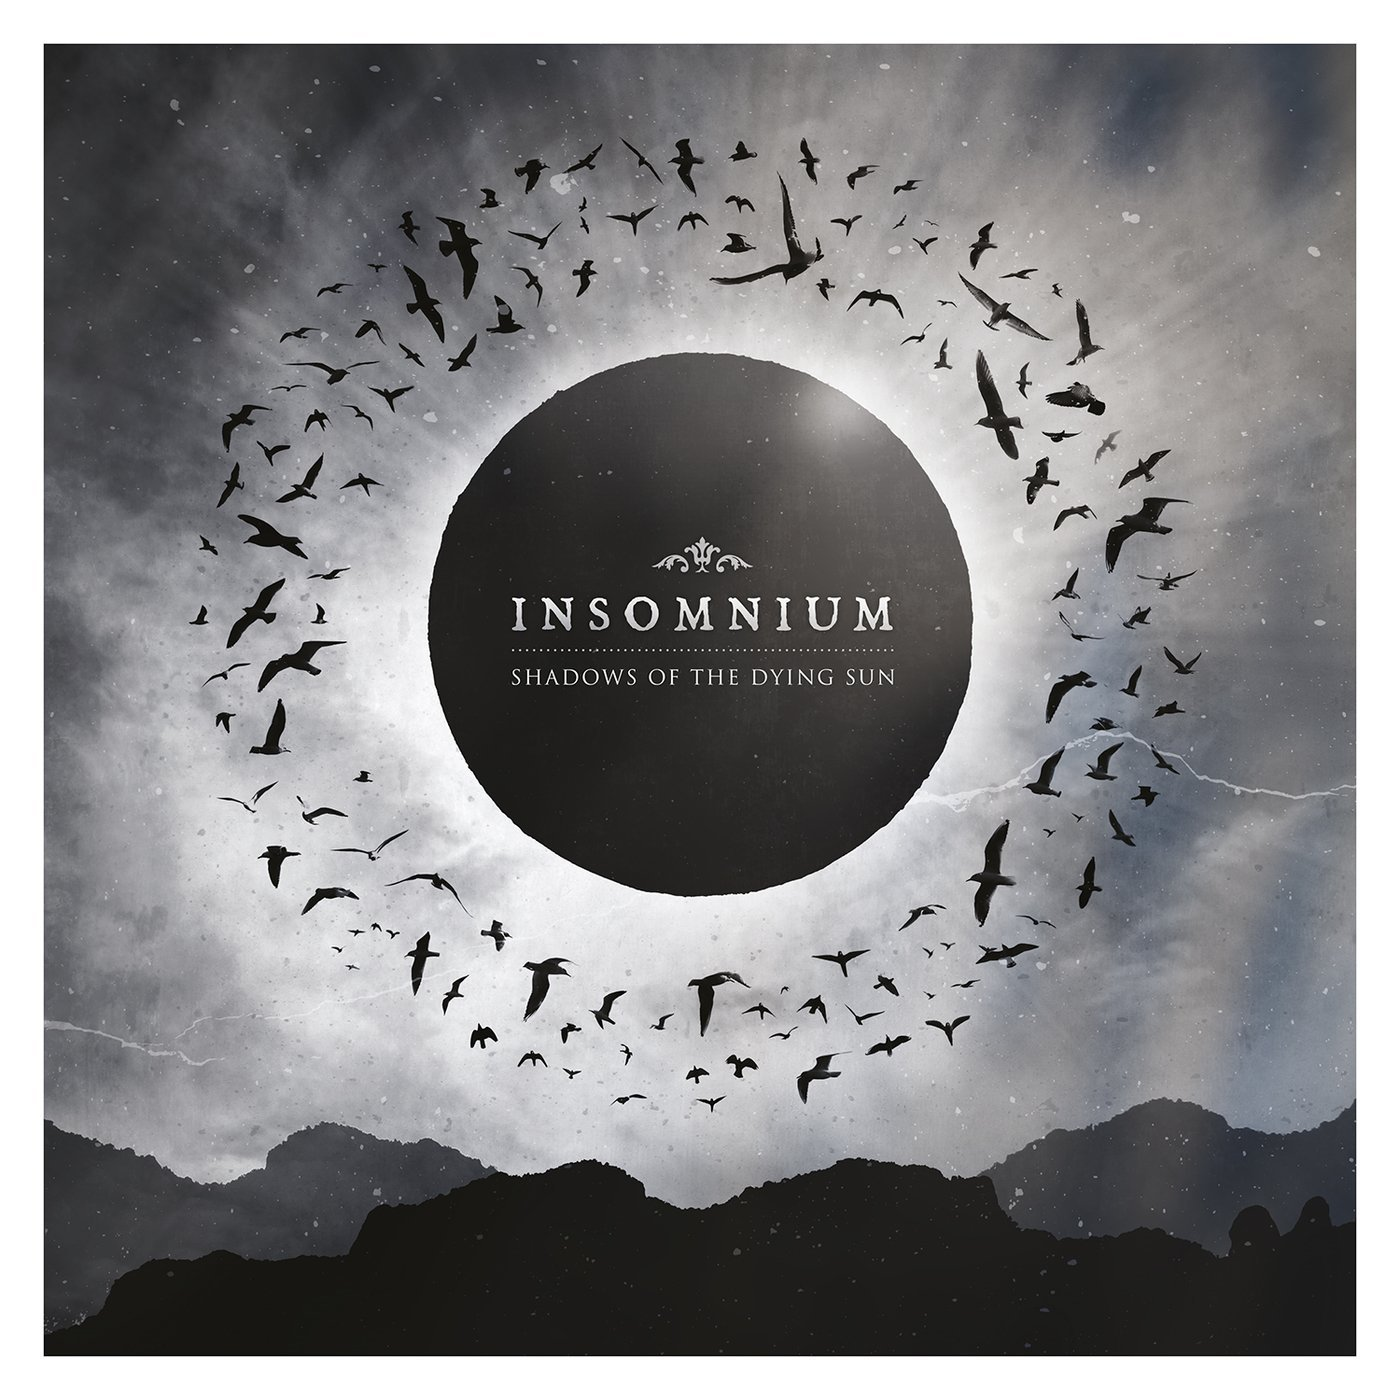 07. Insomnium SHADOWS OF THE DYING SUN 5,00